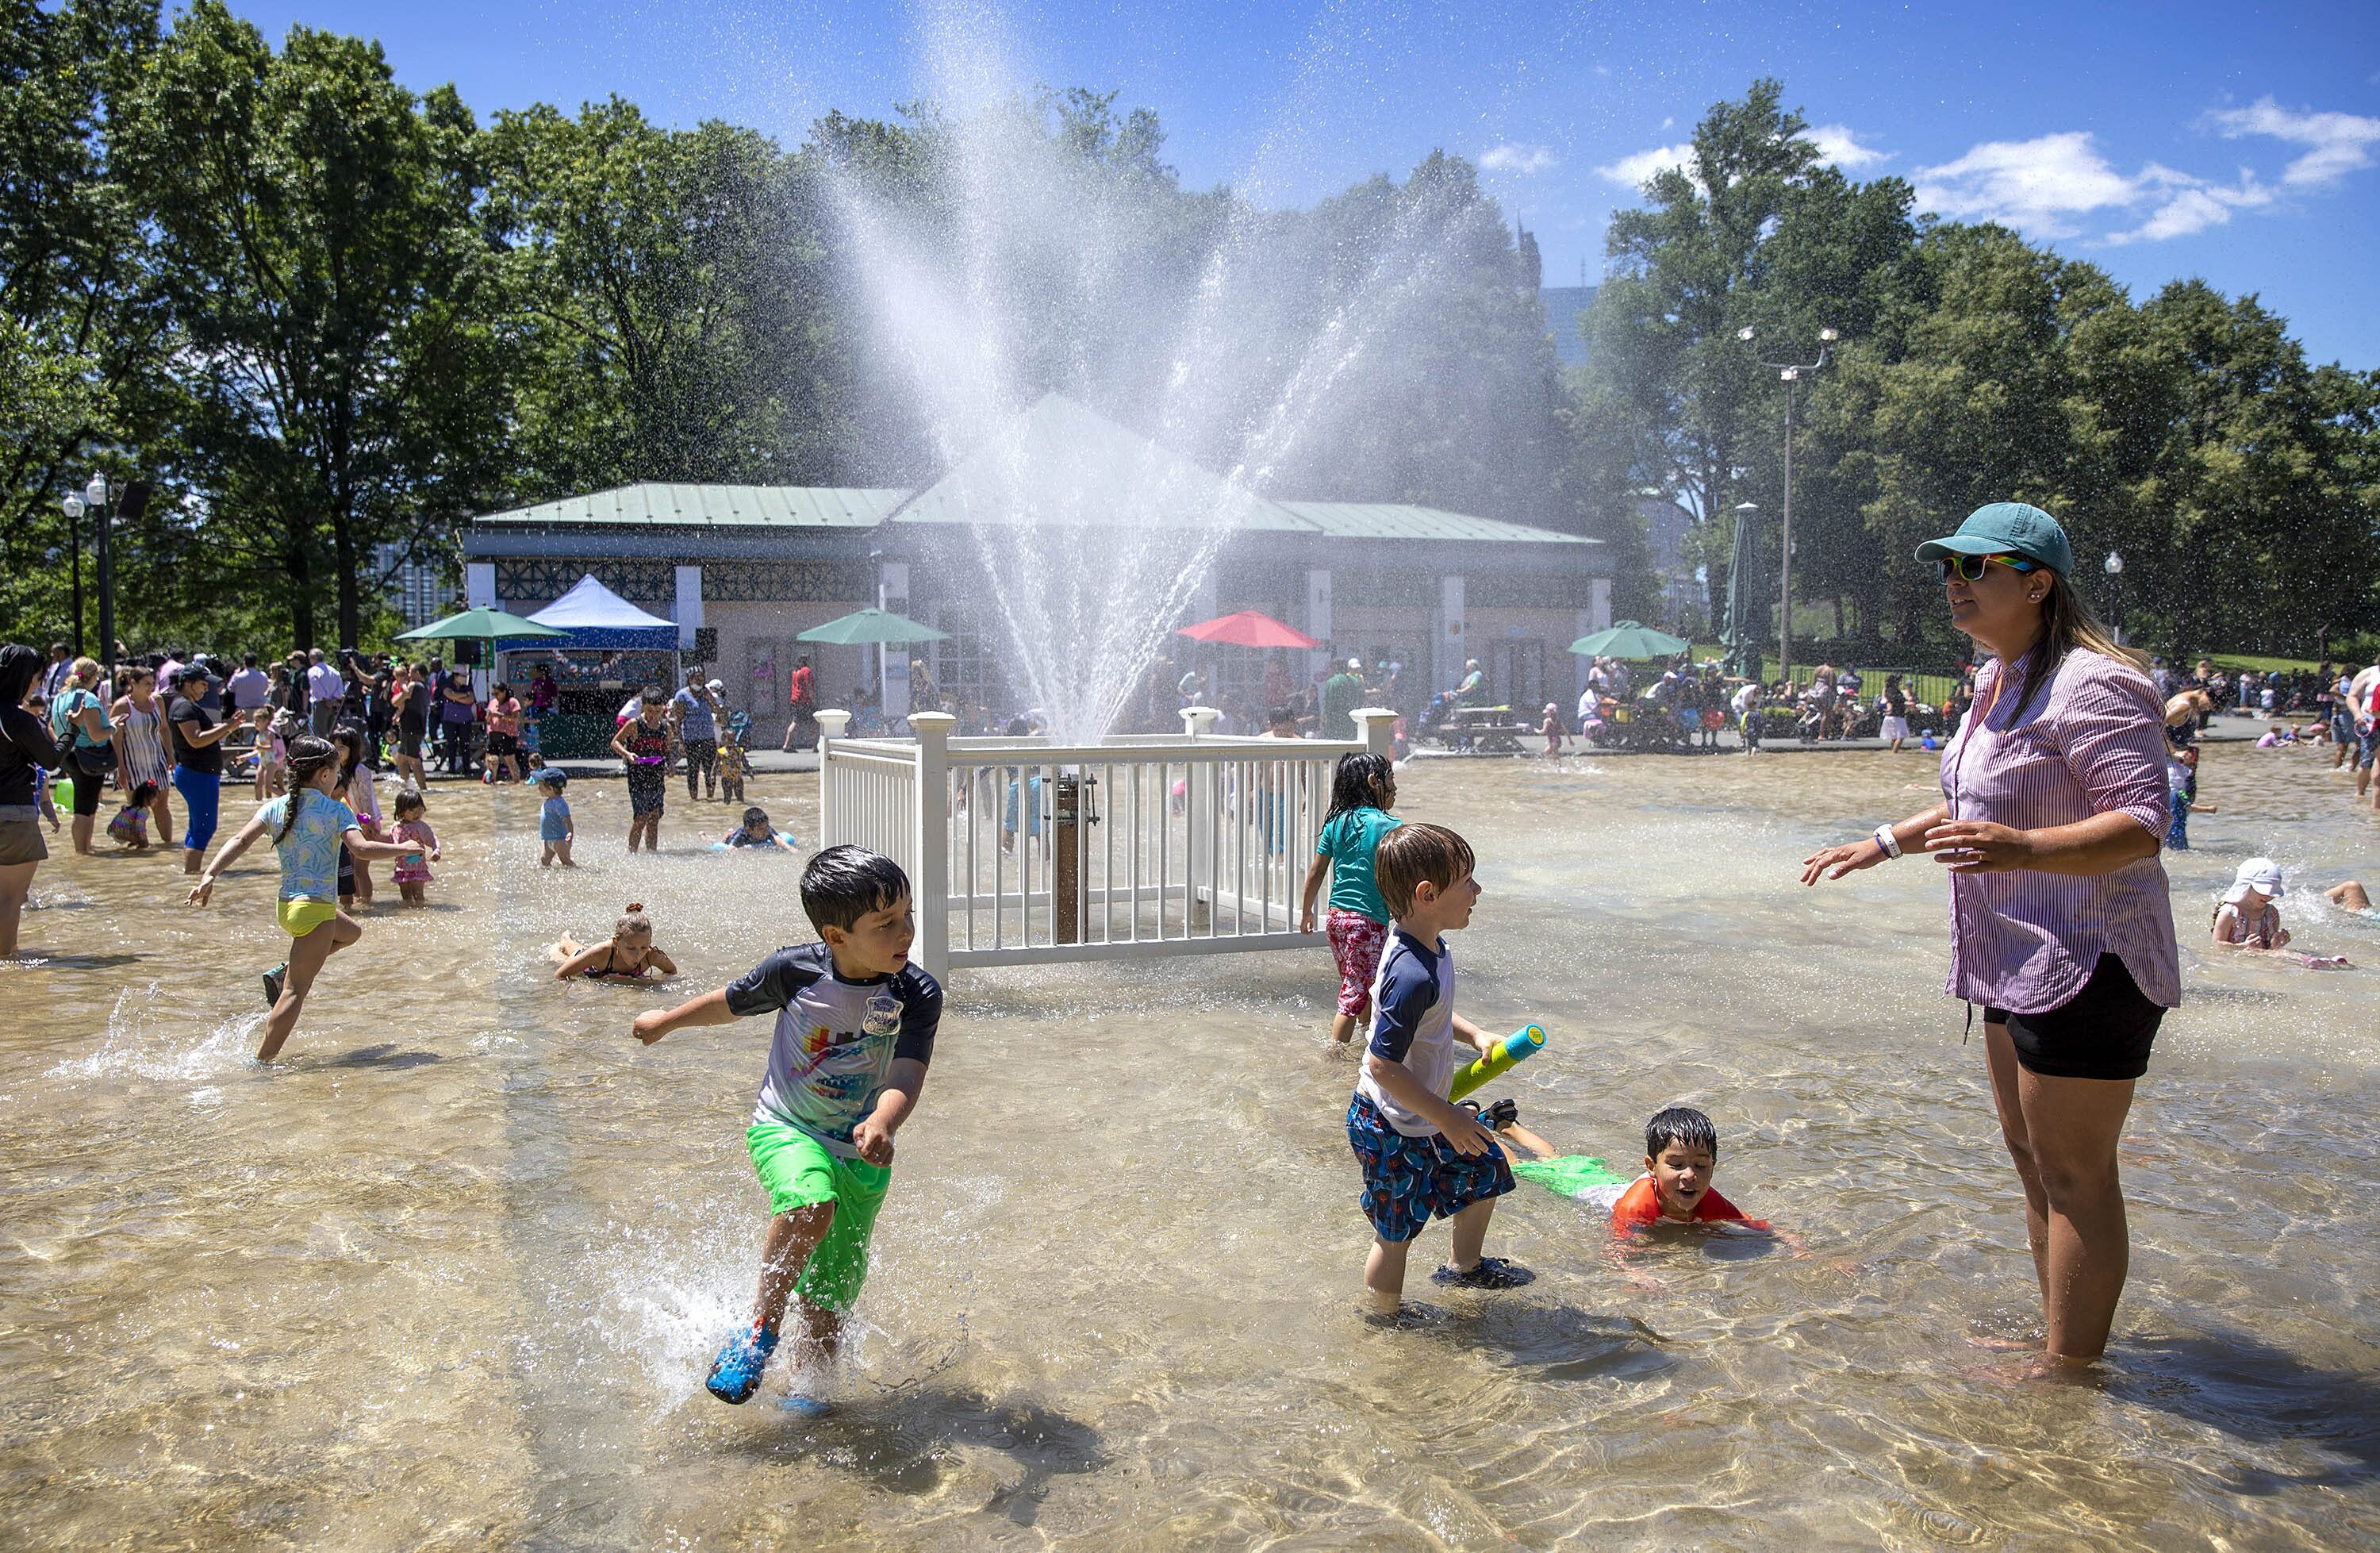 Children splash through the water by the fountain at the summer opening of Boston's Frog Pond. (Robin Lubbock/WBUR)